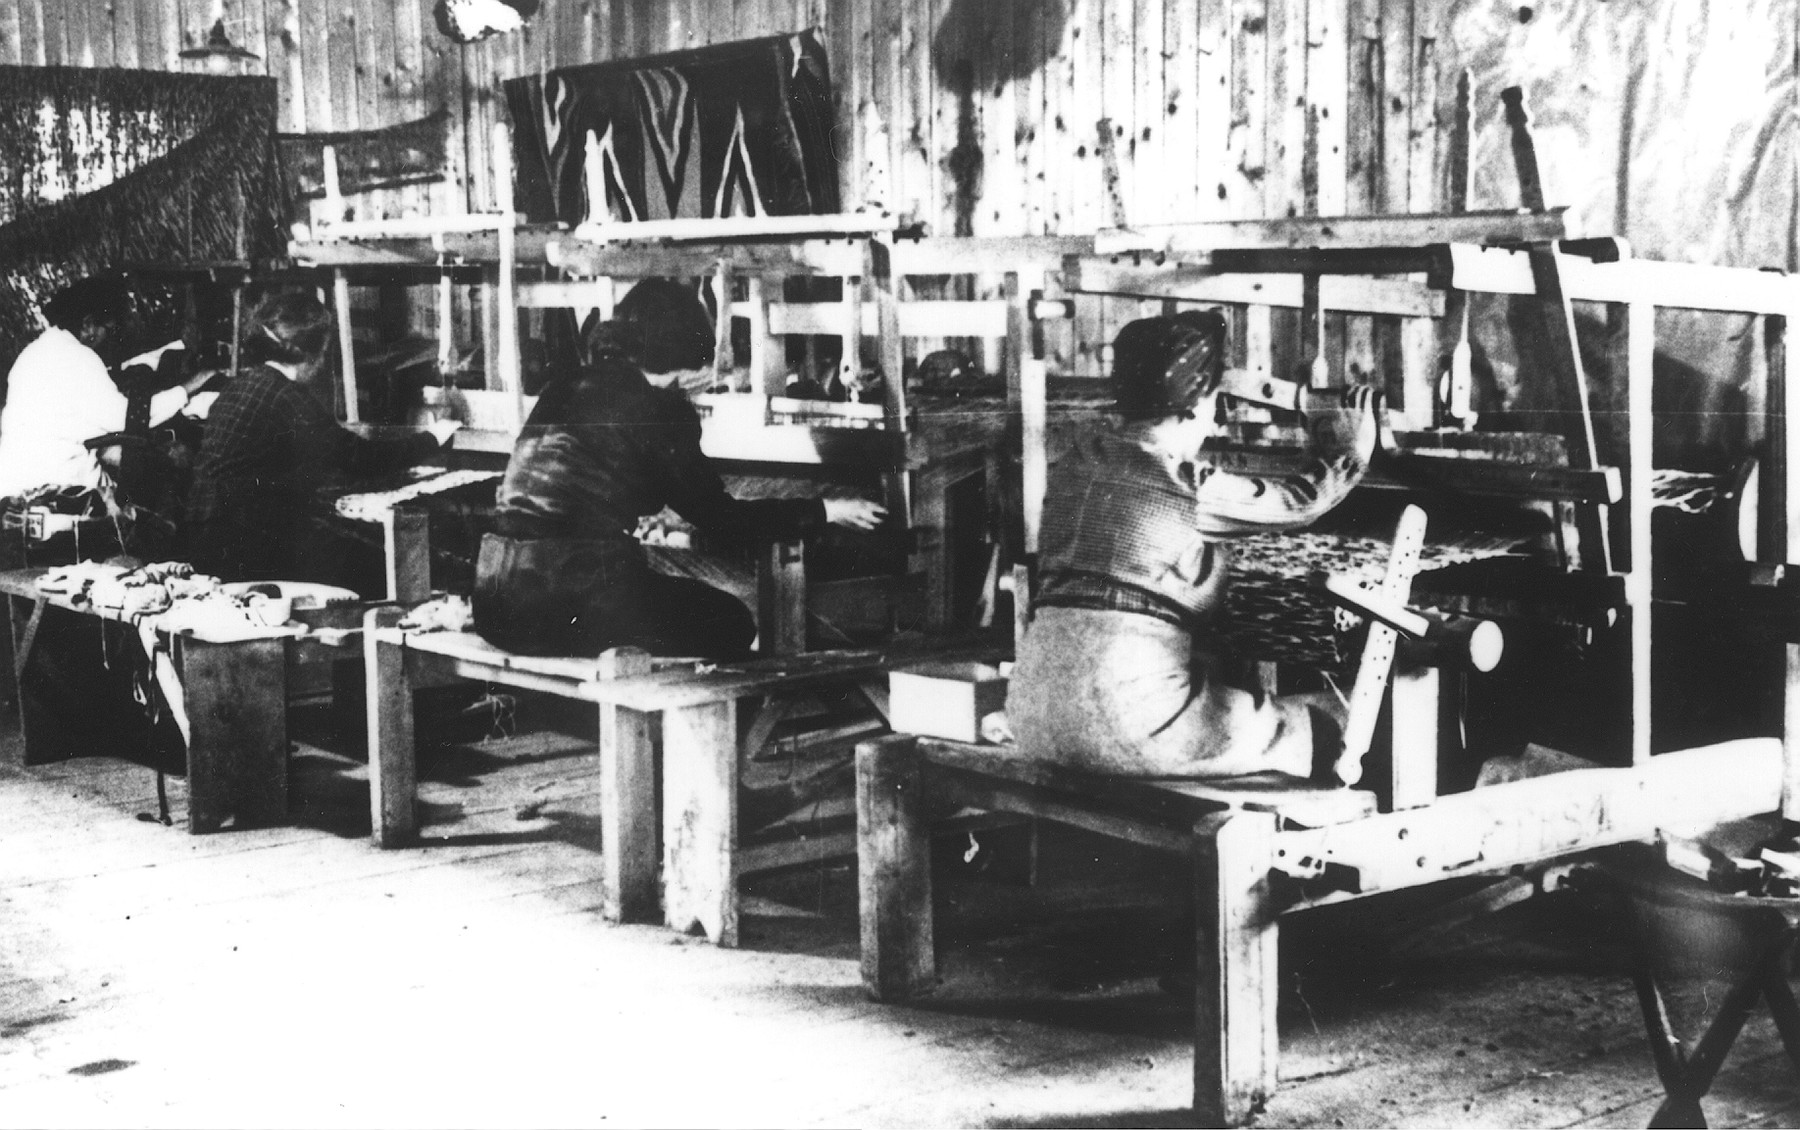 Women prisoners weaving textiles in a workshop in the Novaky labor camp.